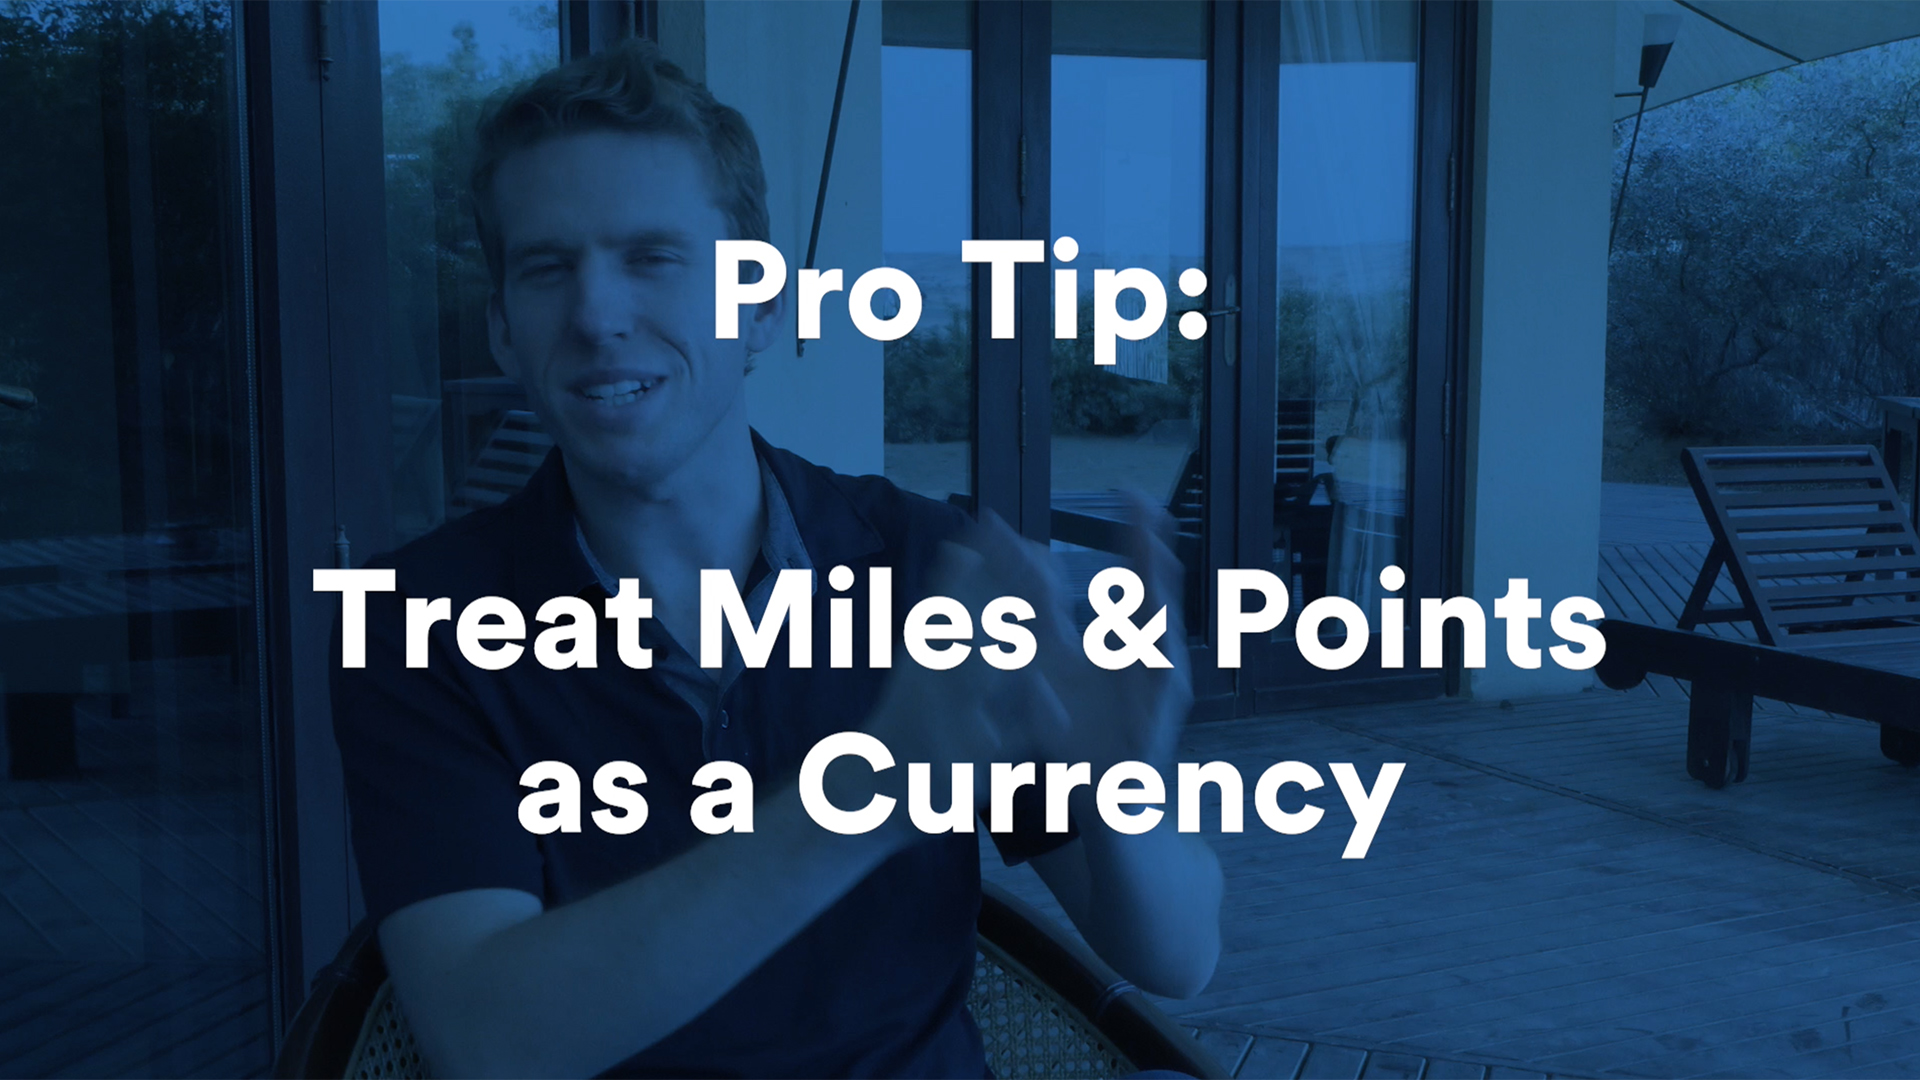 Here's How Collecting Miles and Points Is Just Like Extreme Couponing